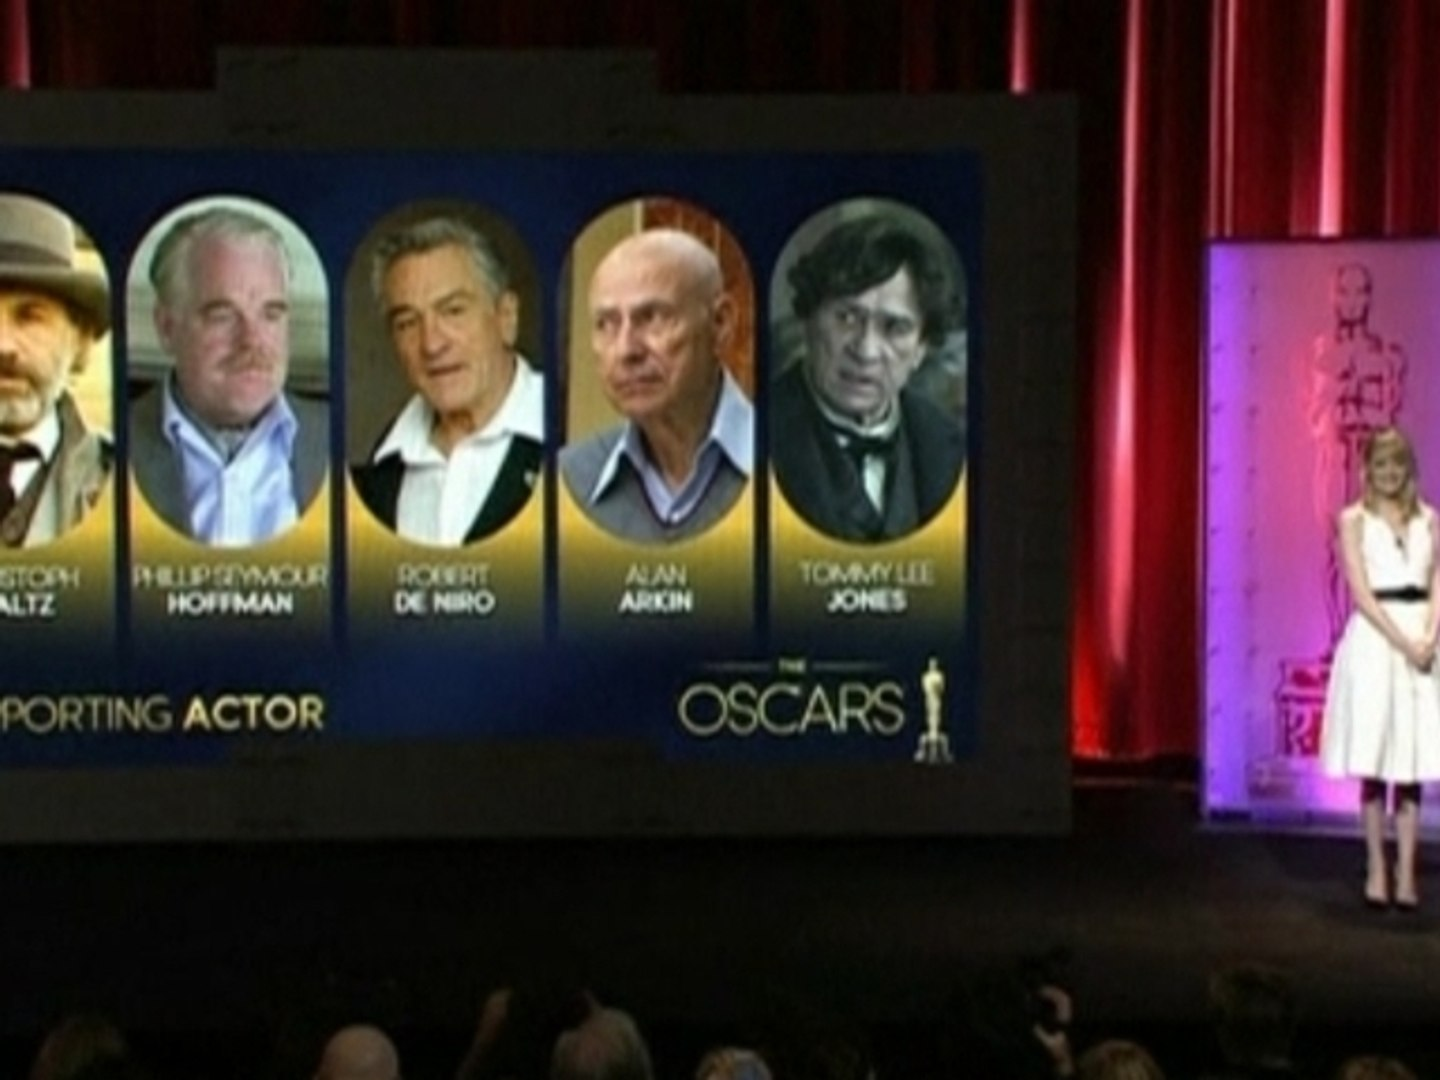 Oscars picks for best supporting actor and actress